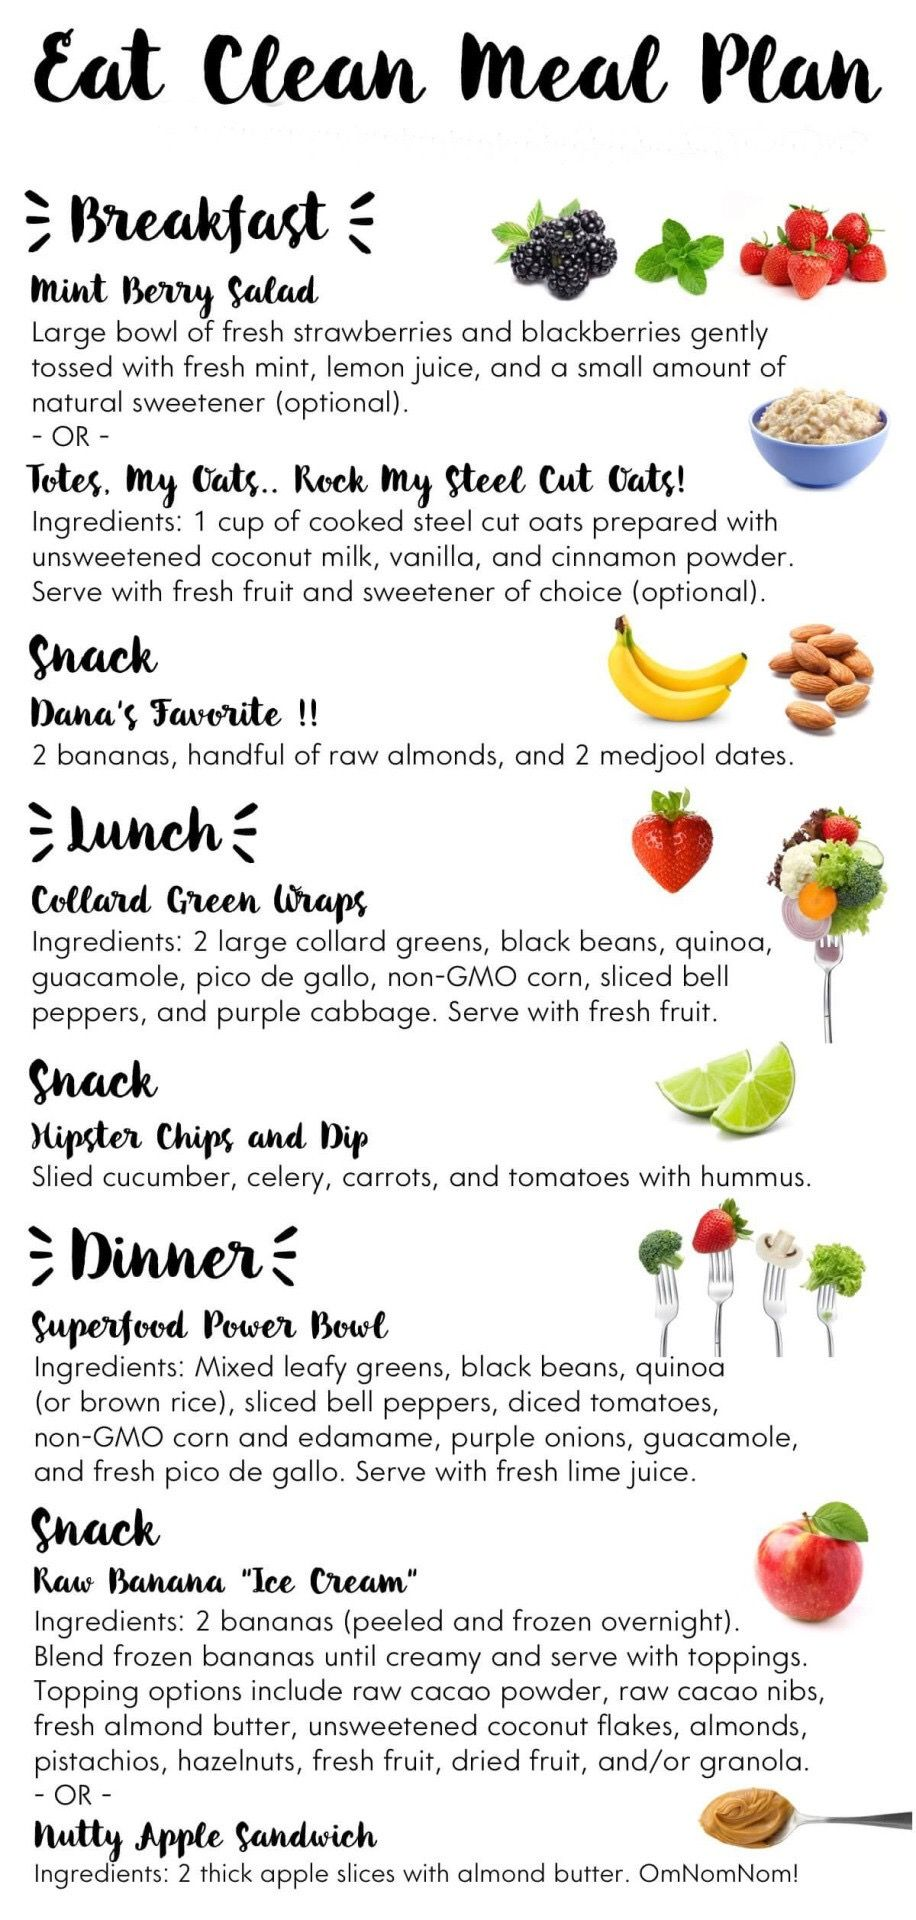 Pin by InfusionsKW on Clean Eating Clean meal plan